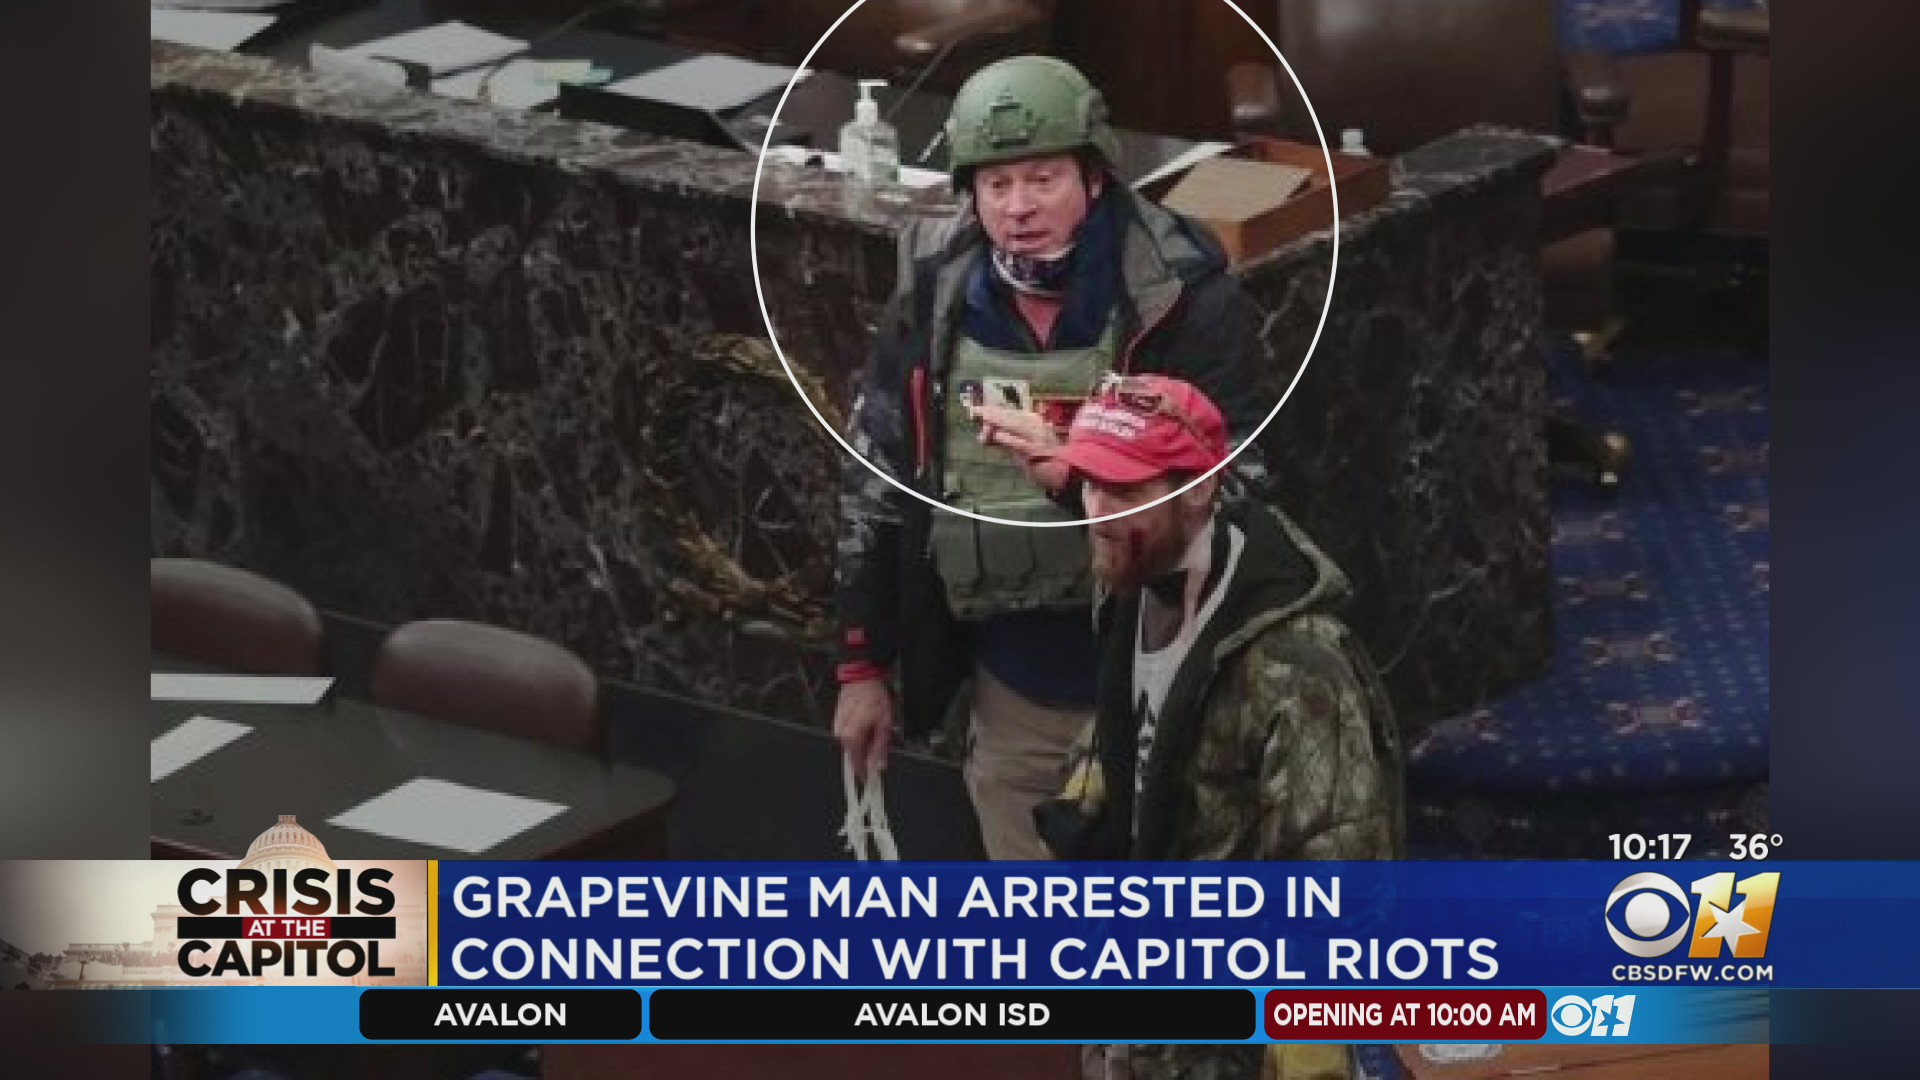 Ex-wife among several people who identified rioter from Grapevine at Capitol, federal warrant says